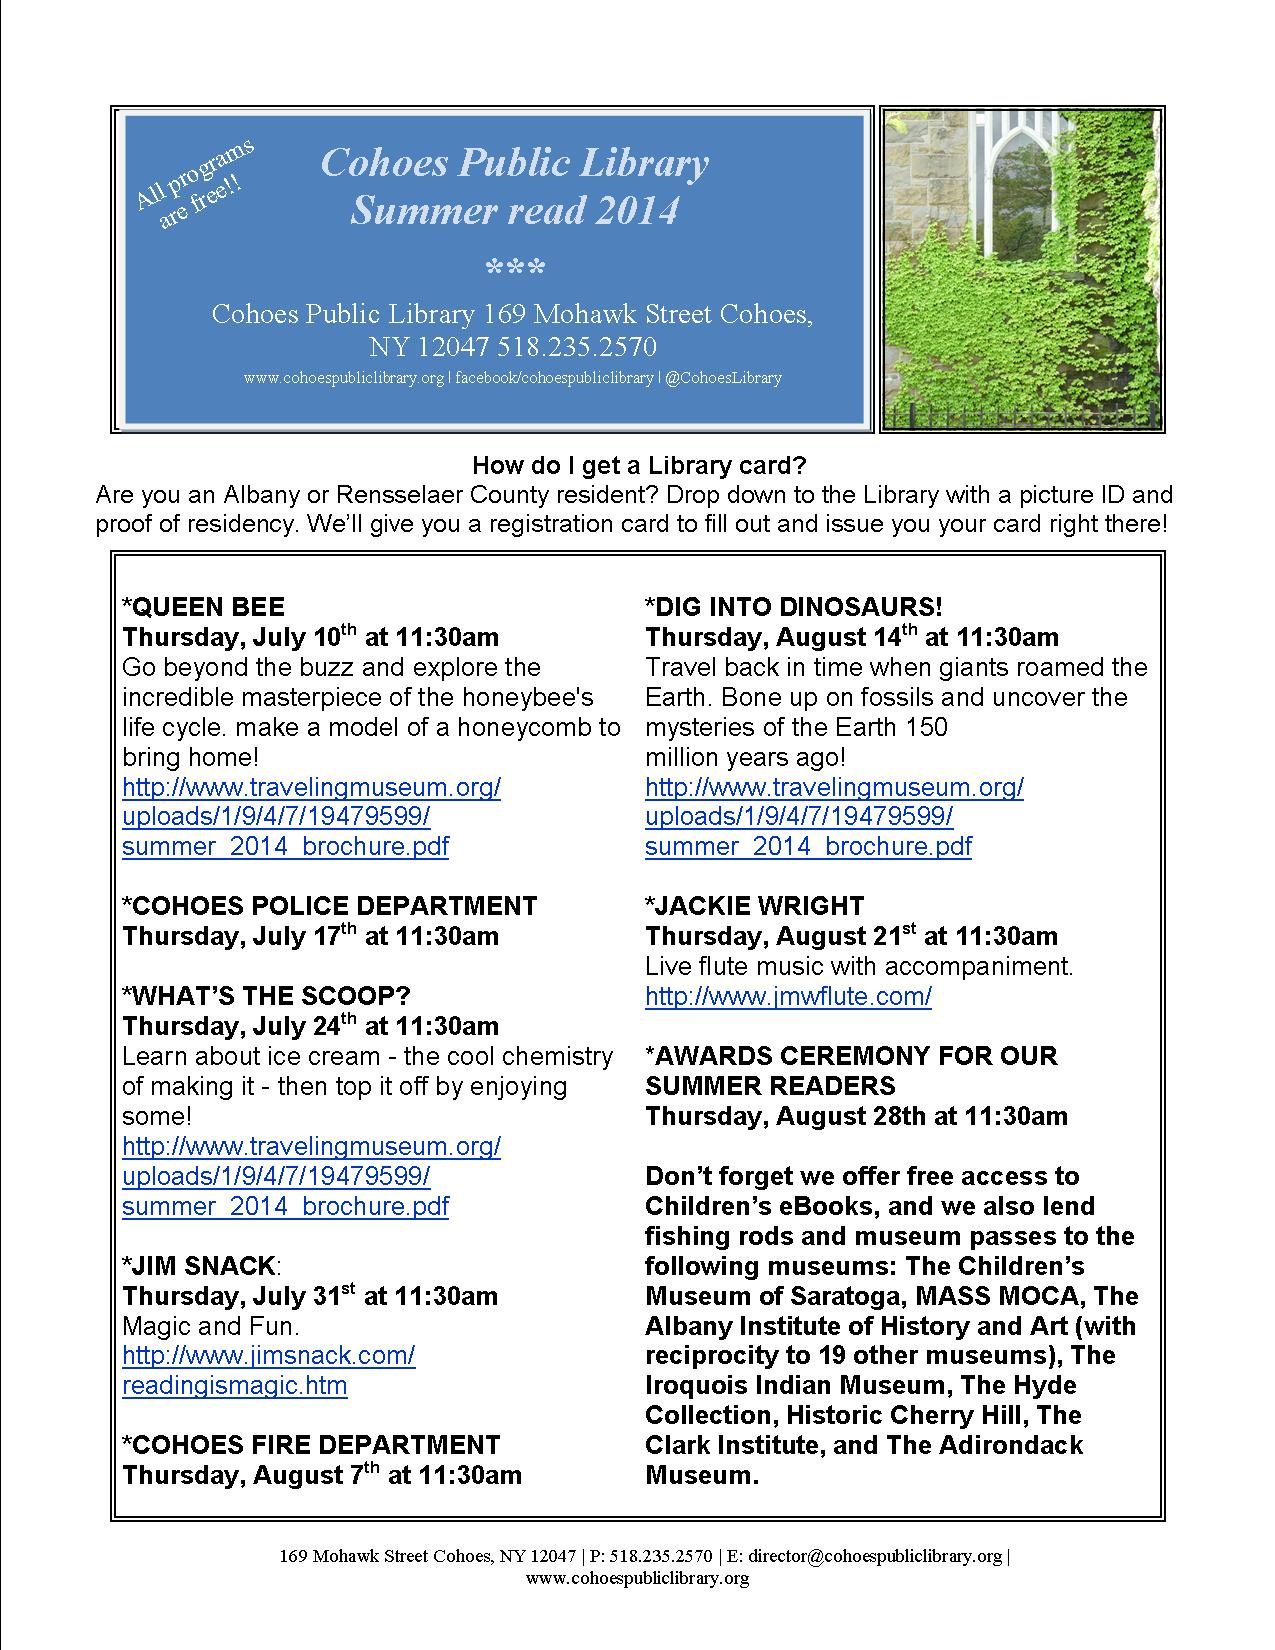 Summer Read Program Schedule Cohoes Public Library